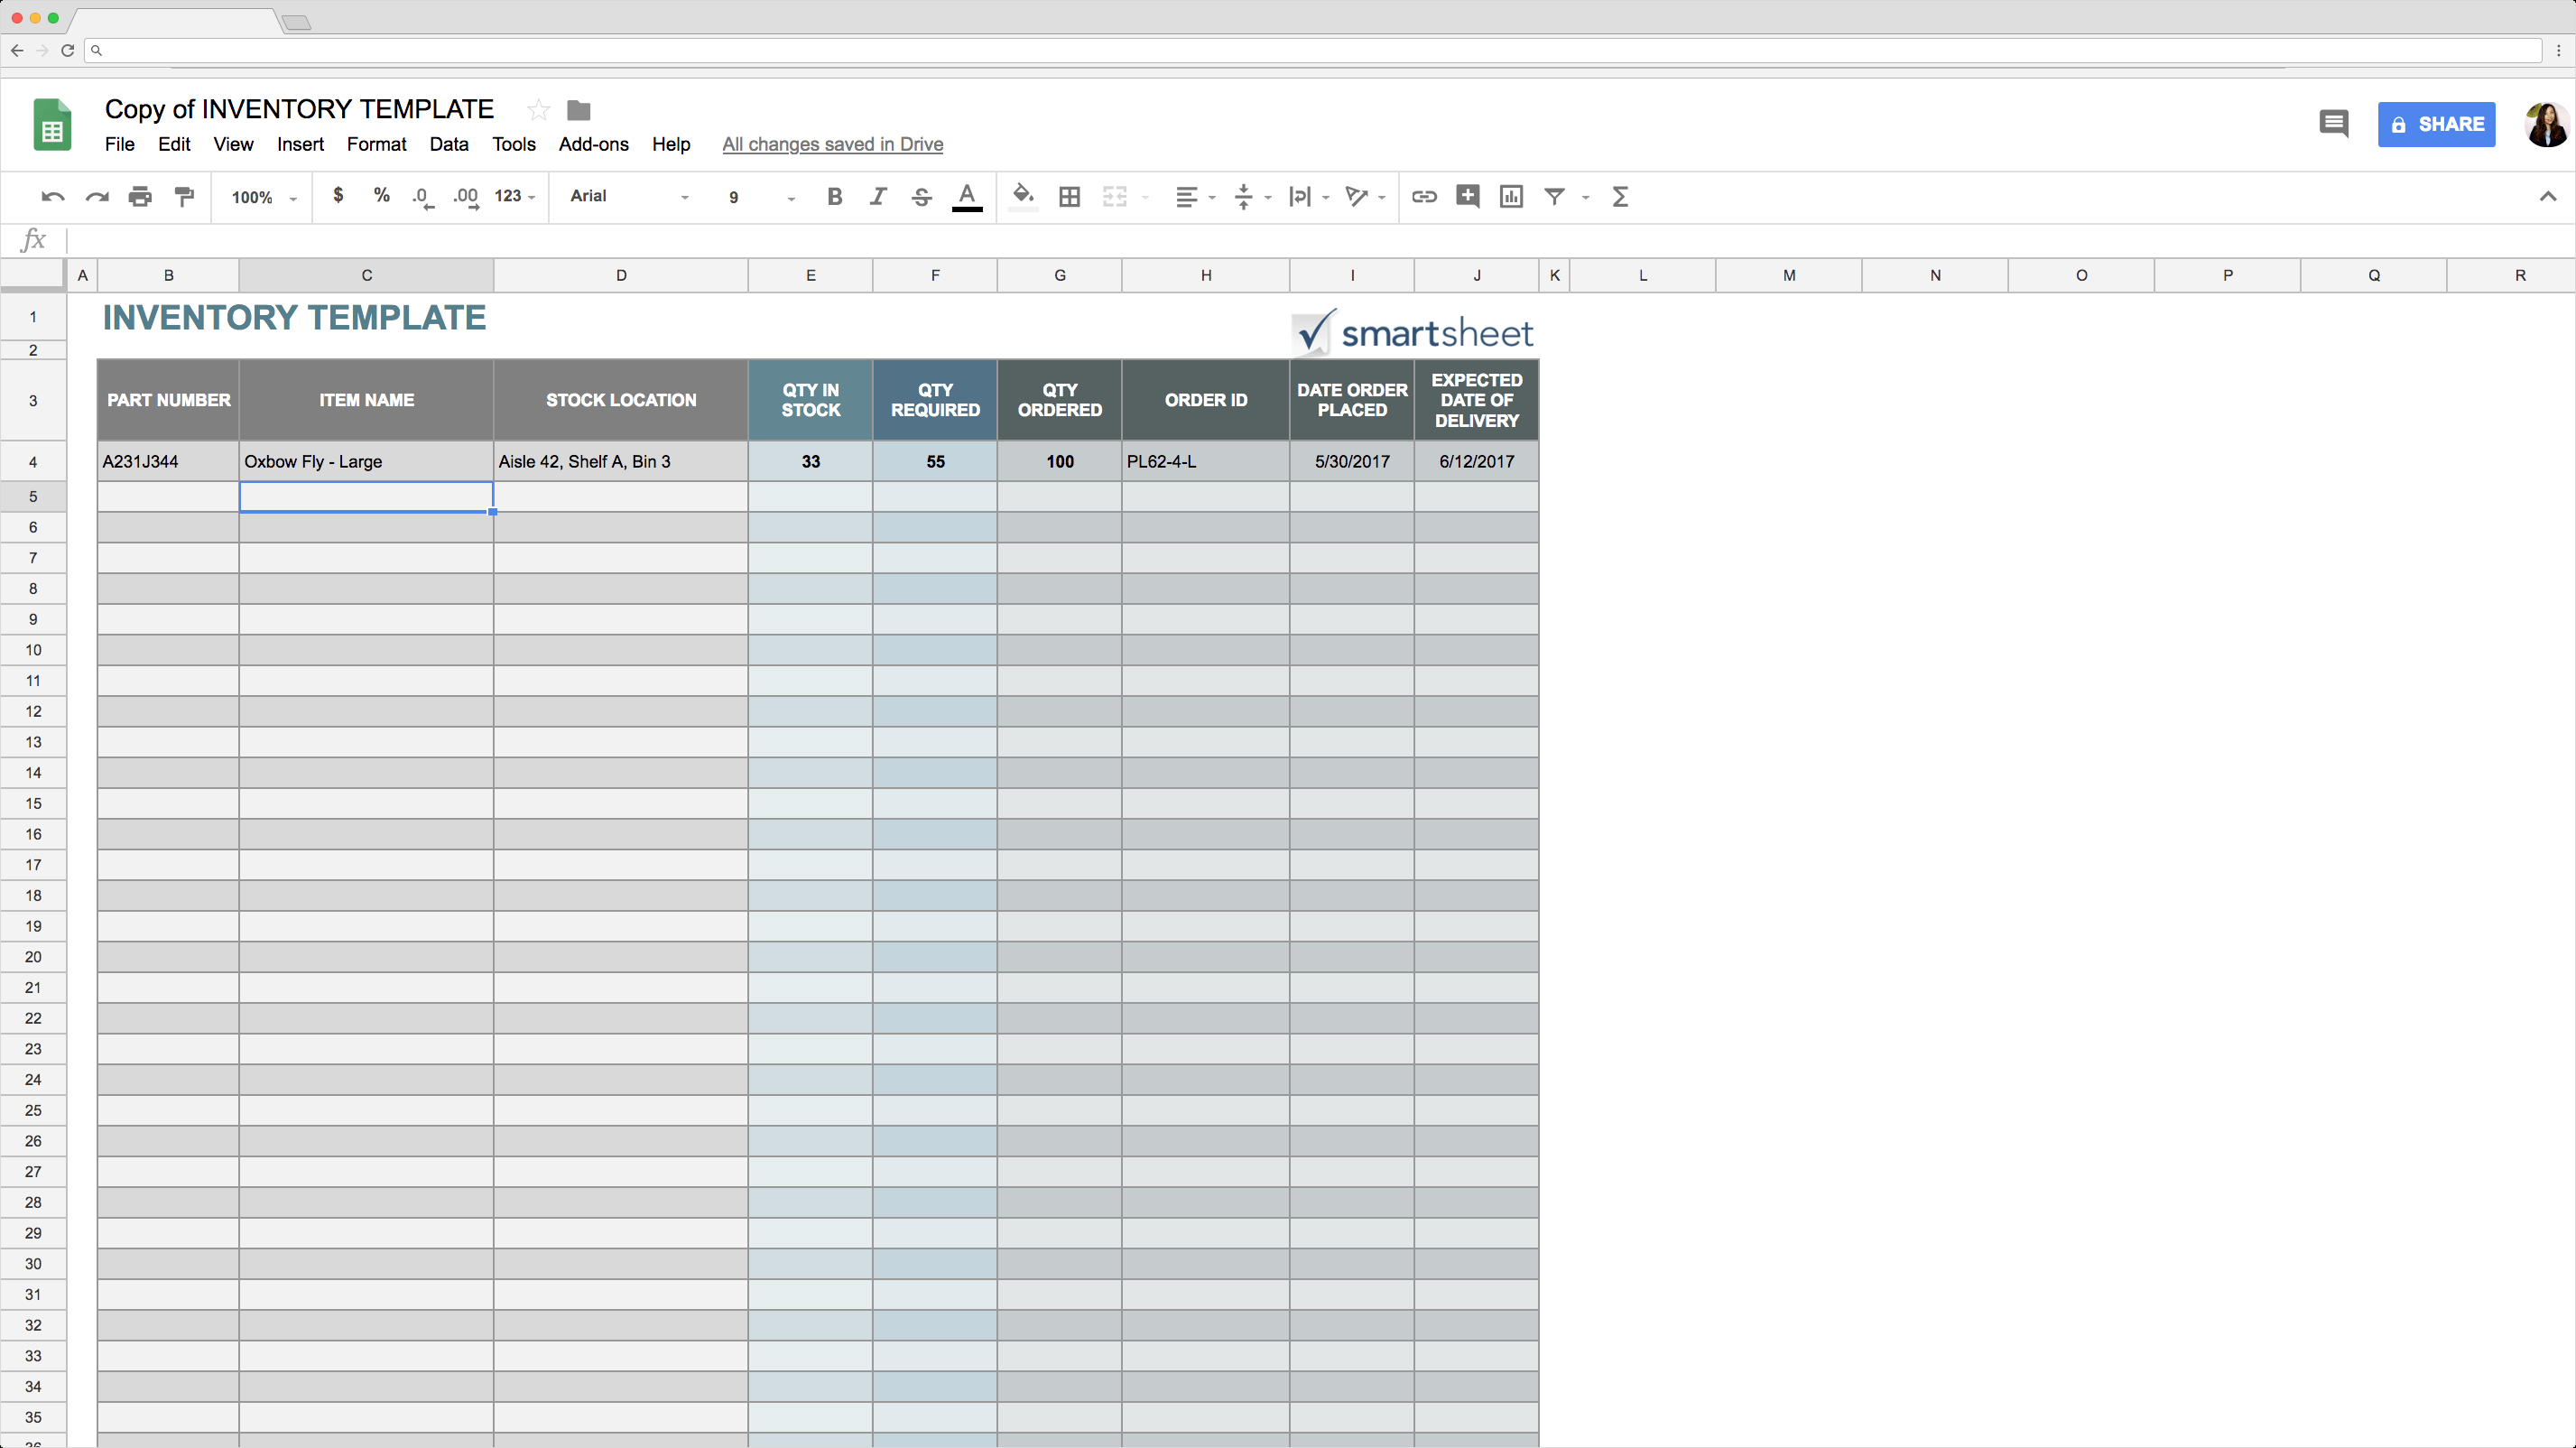 Ppe Inventory Spreadsheet Throughout Top 5 Free Google Sheets Inventory Templates · Blog Sheetgo